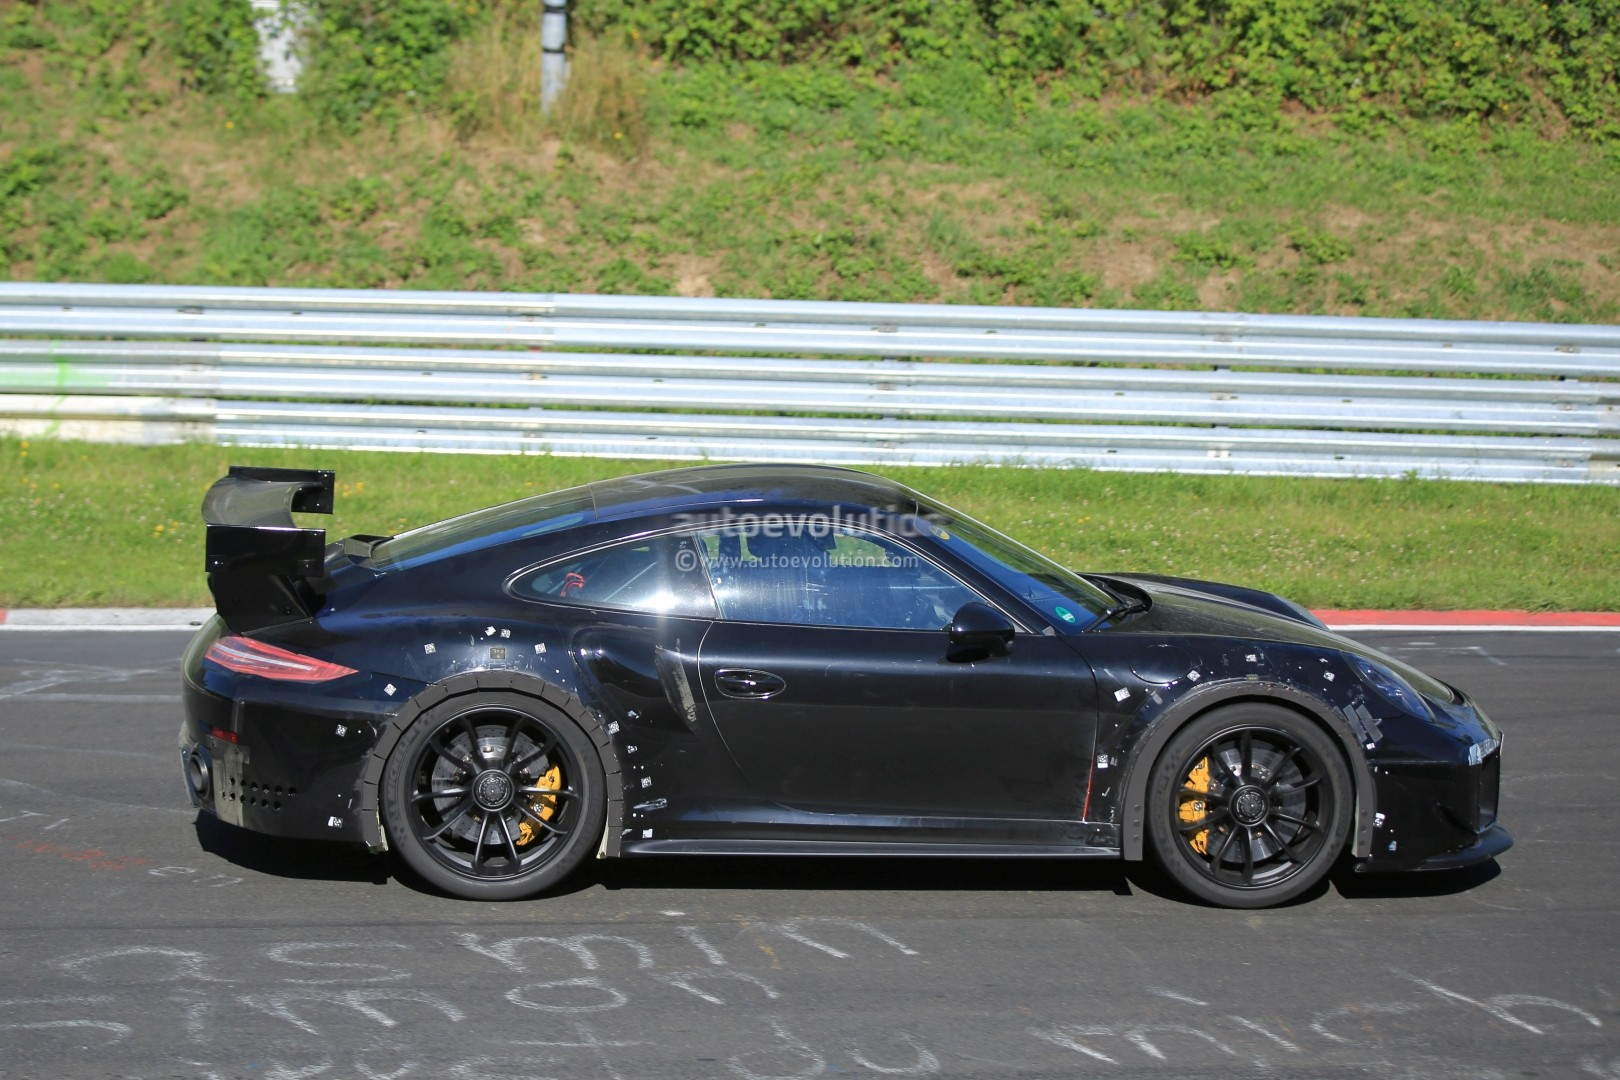 2018 porsche 911 gt2 spied on nurburgring with funny wheel tolerance test rub. Black Bedroom Furniture Sets. Home Design Ideas